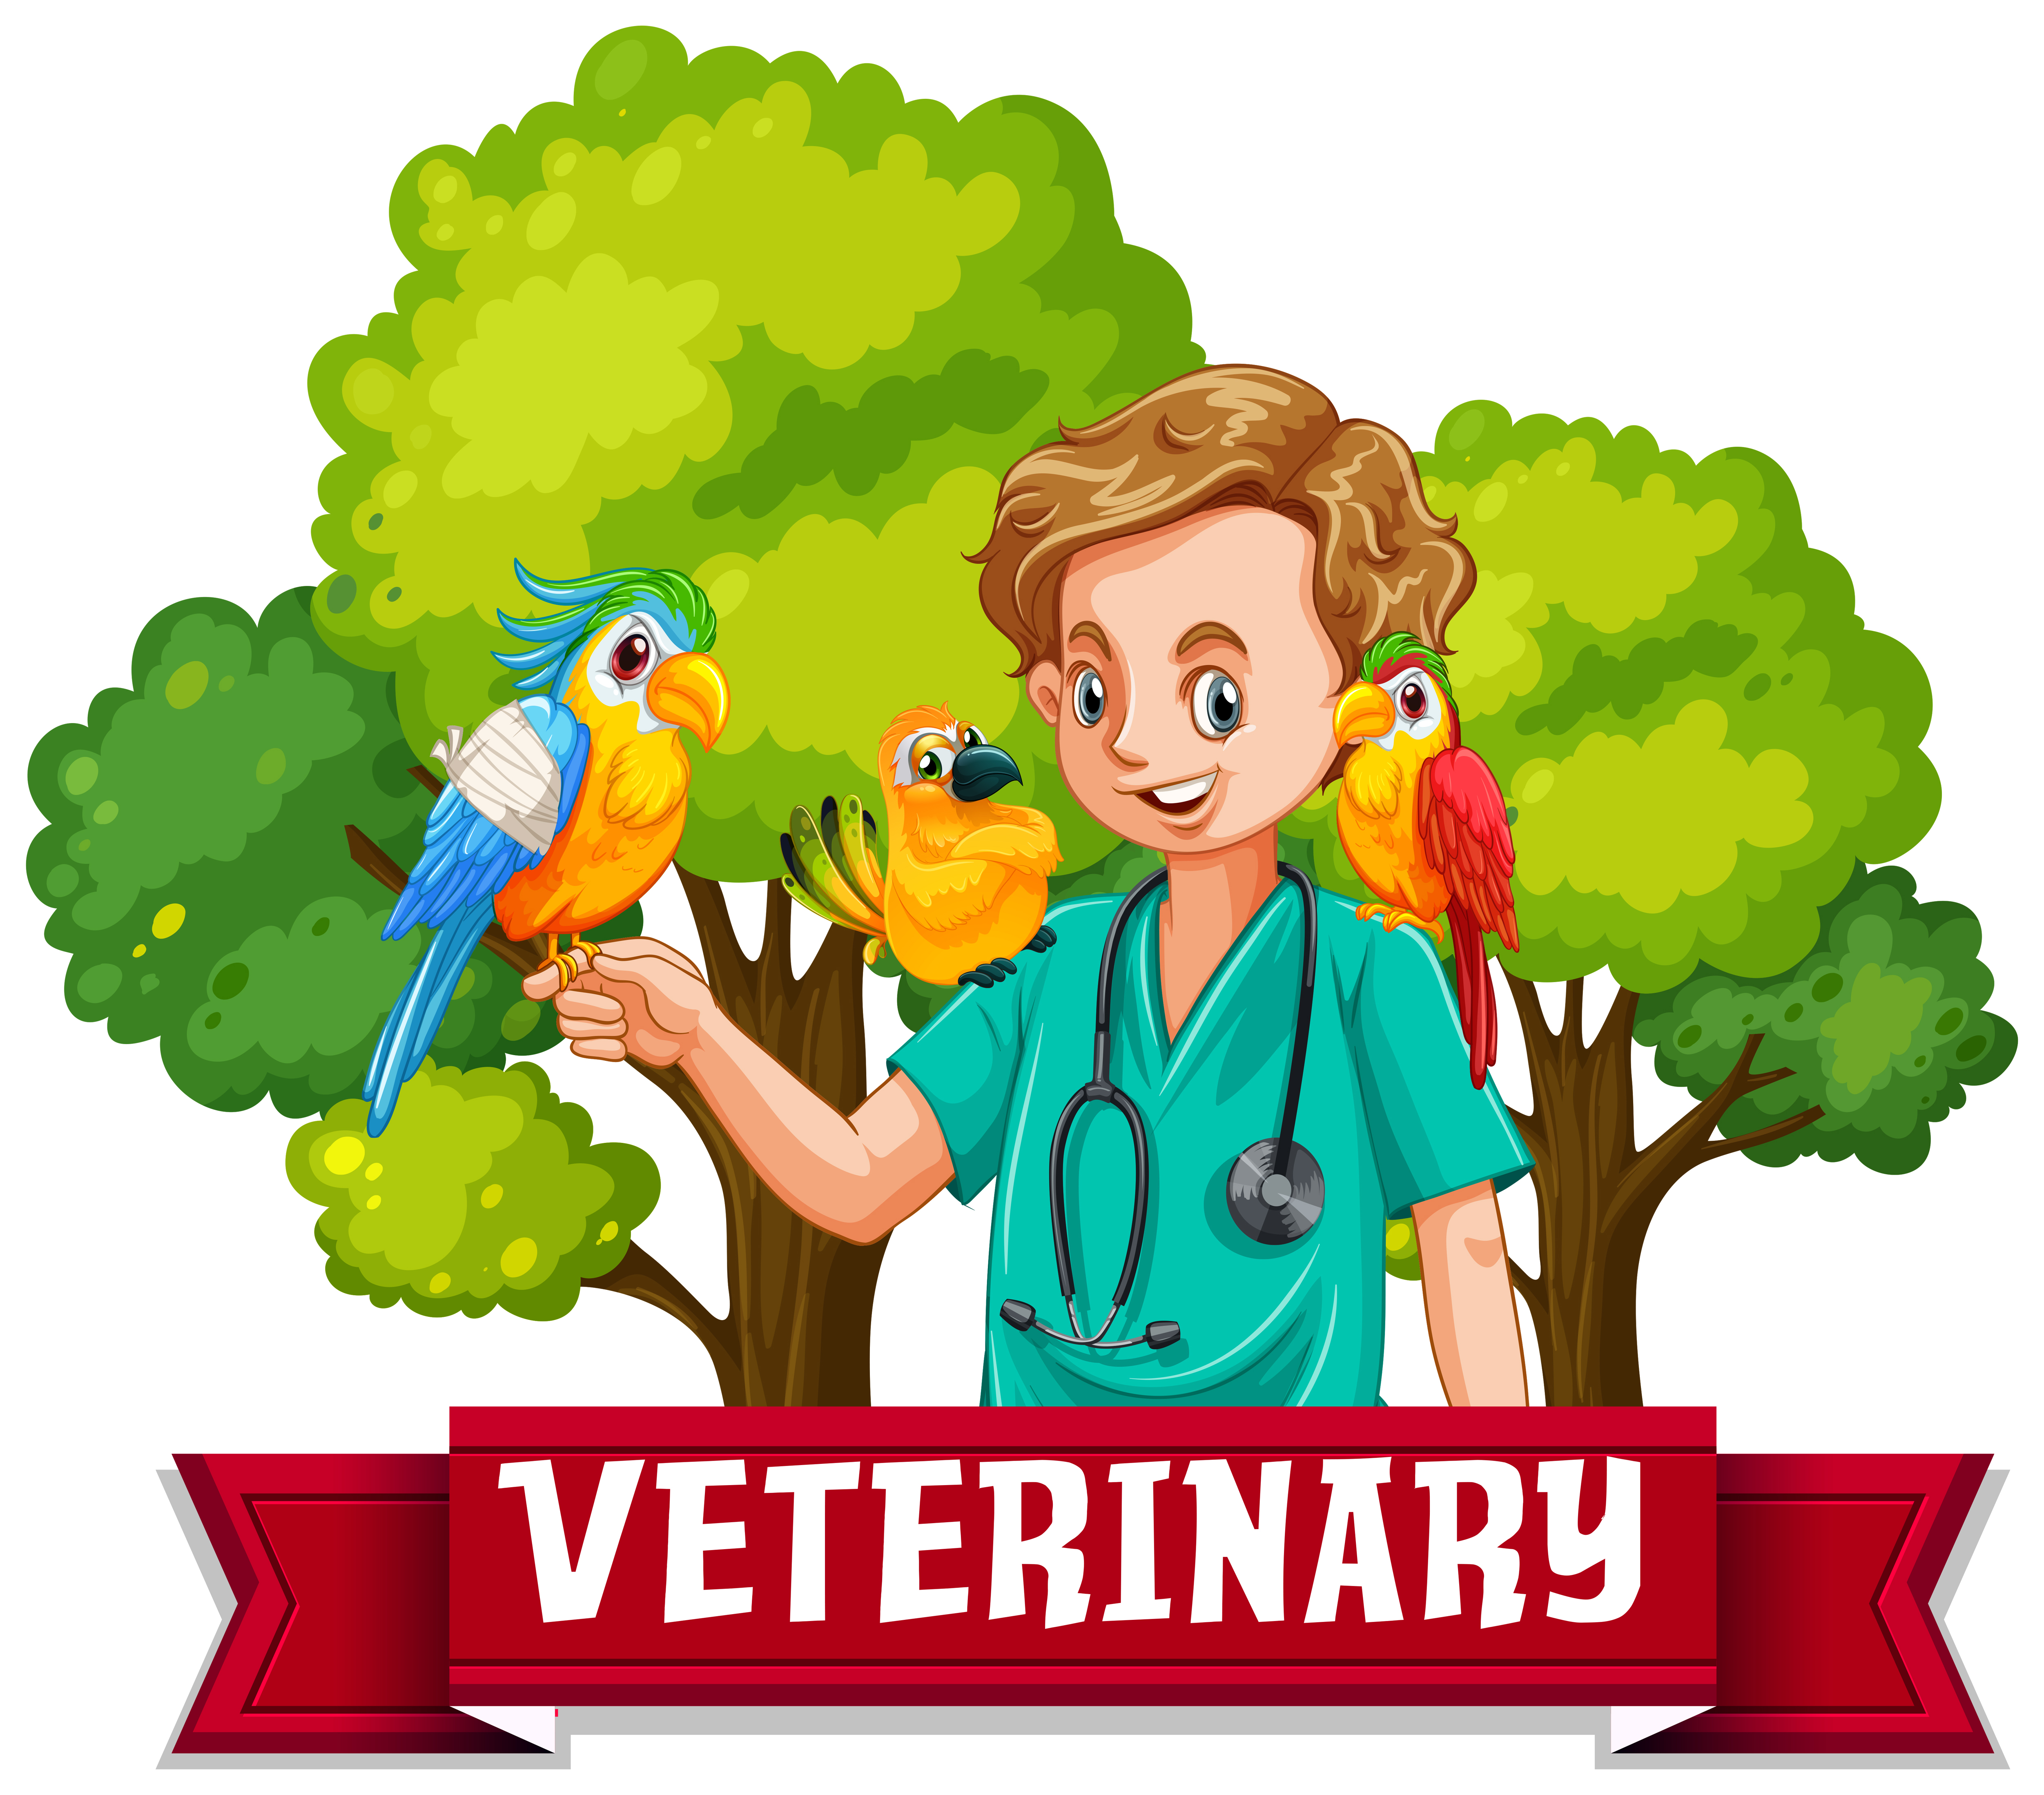 Veterinary Banner With Colourful Bird 418354 Vector Art At